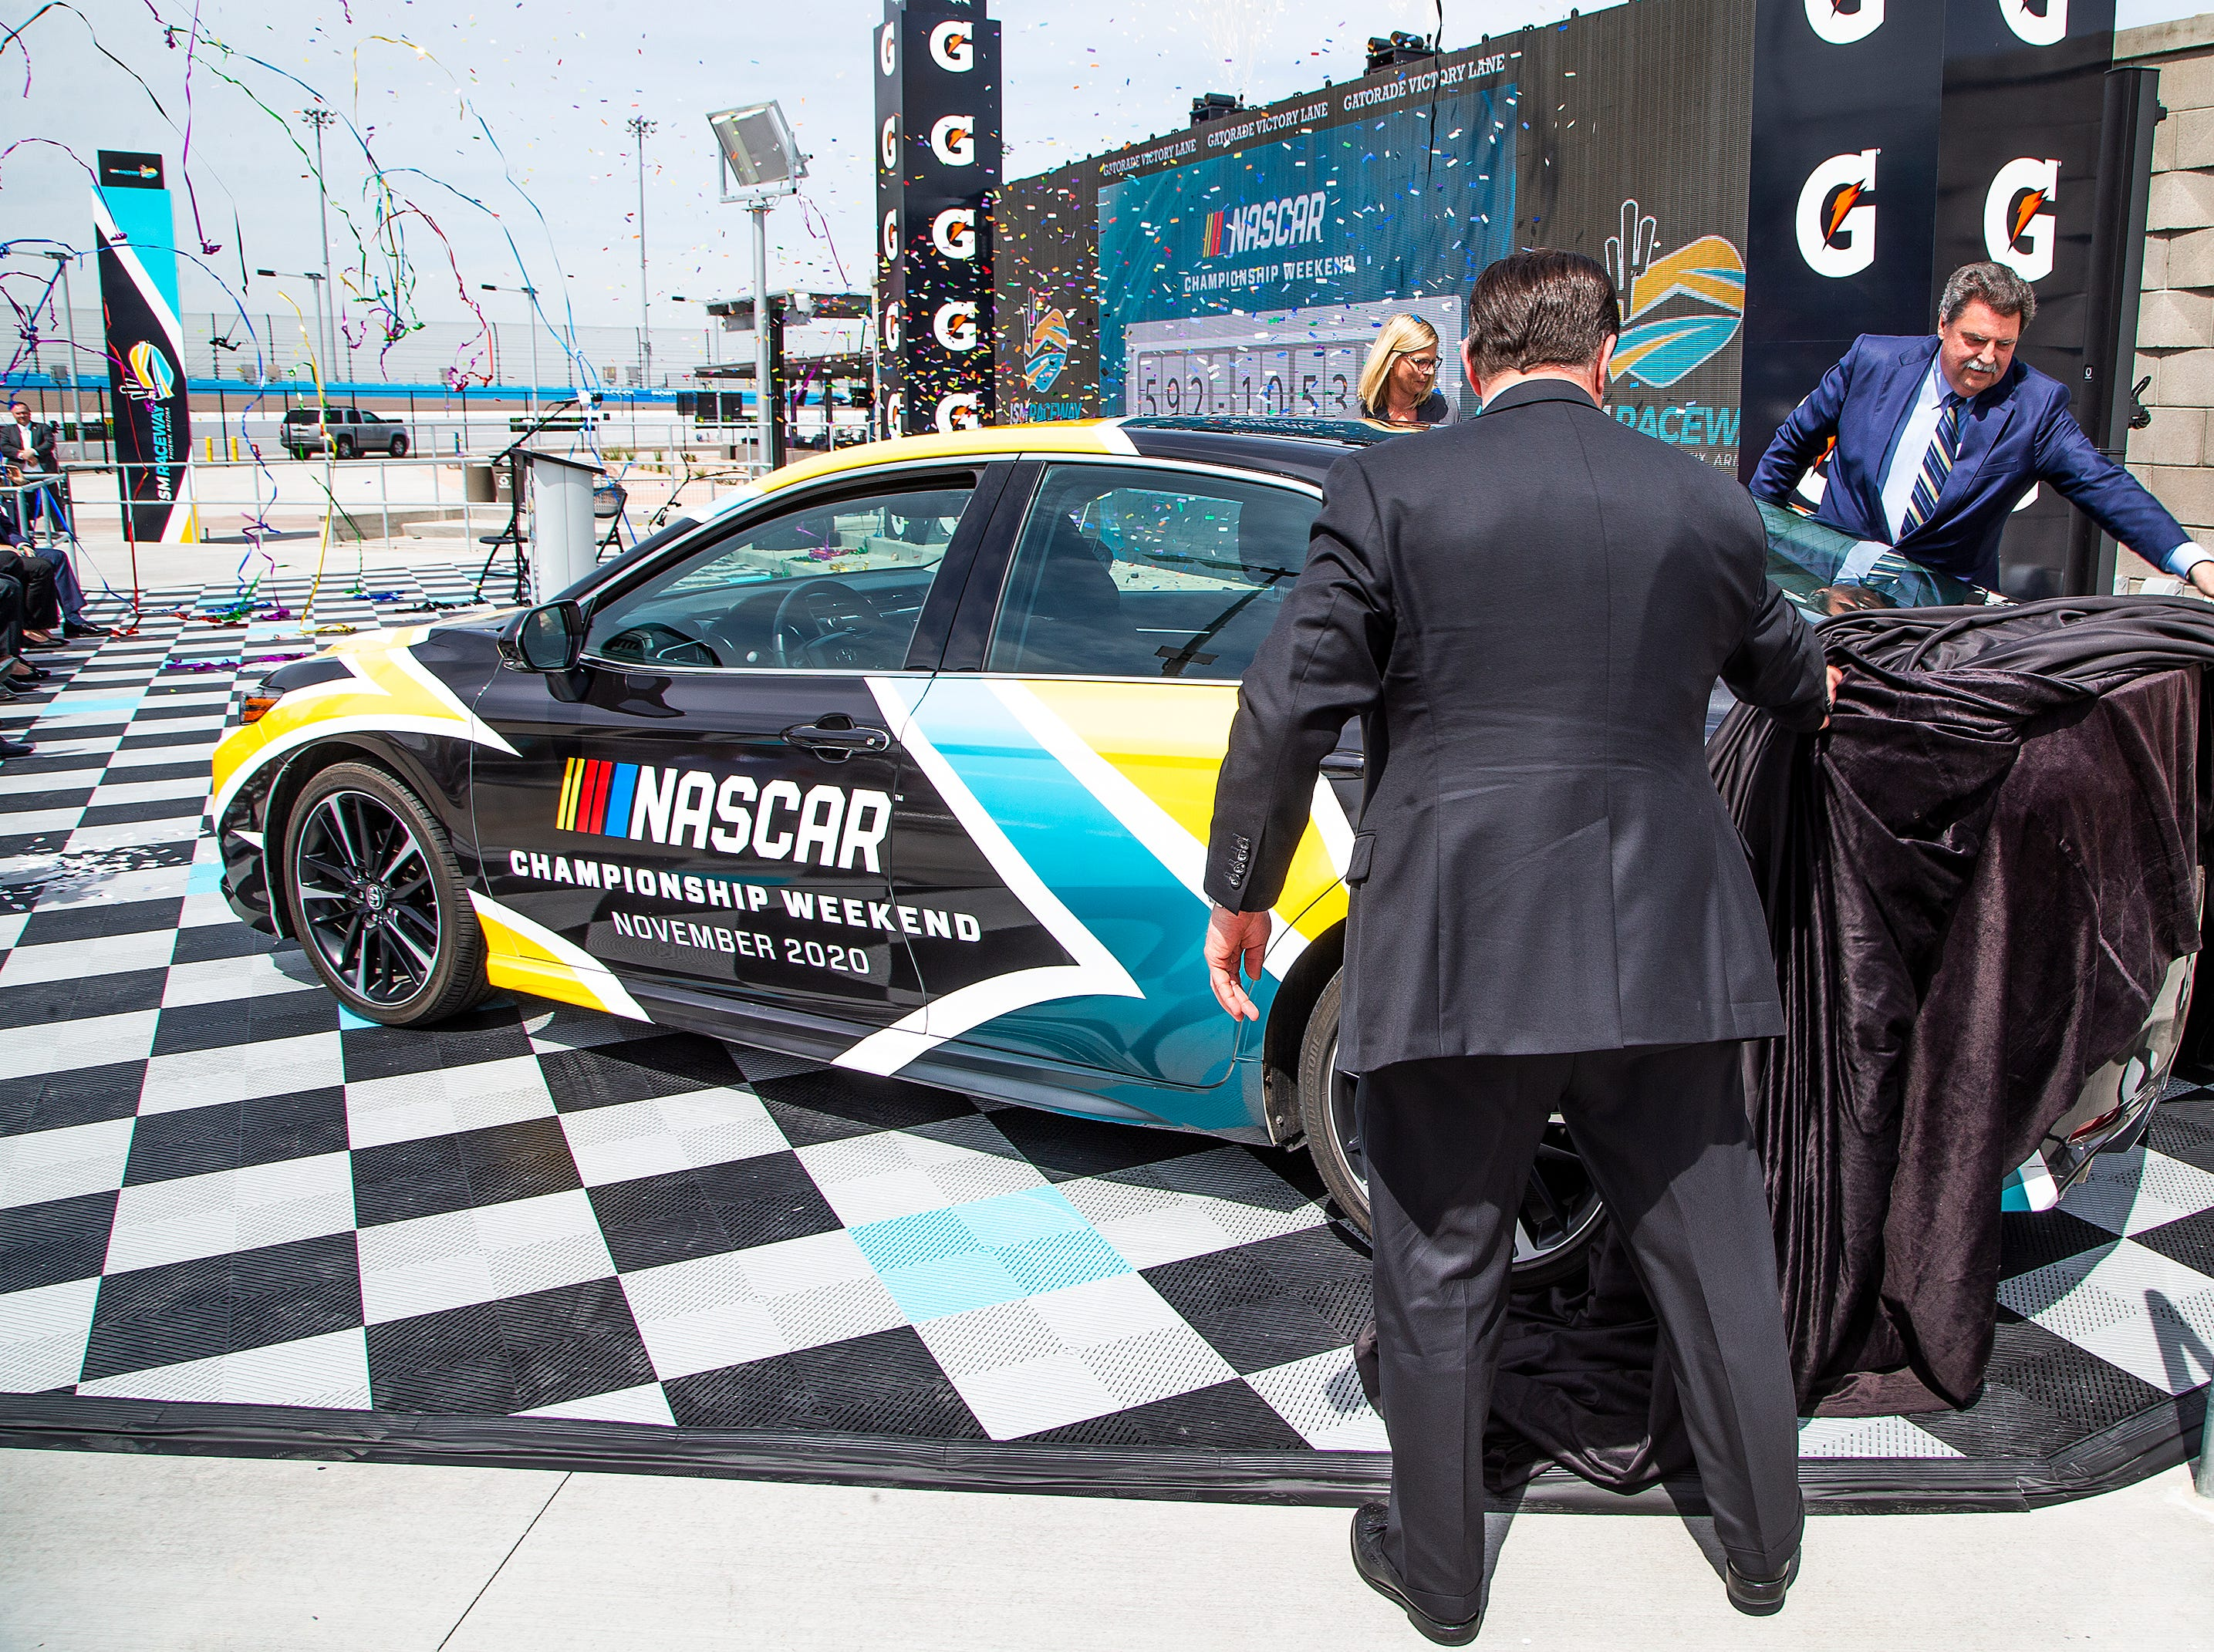 Gov. Doug Ducey (left) and NASCAR Vice Chairman Mike Helton help unveil a NASCAR vehicle with the logo of the NASCAR Championship Weekend on March 26, 2019, after it was the announced that NASCAR will be moving the championship to ISM Raceway in Avondale.